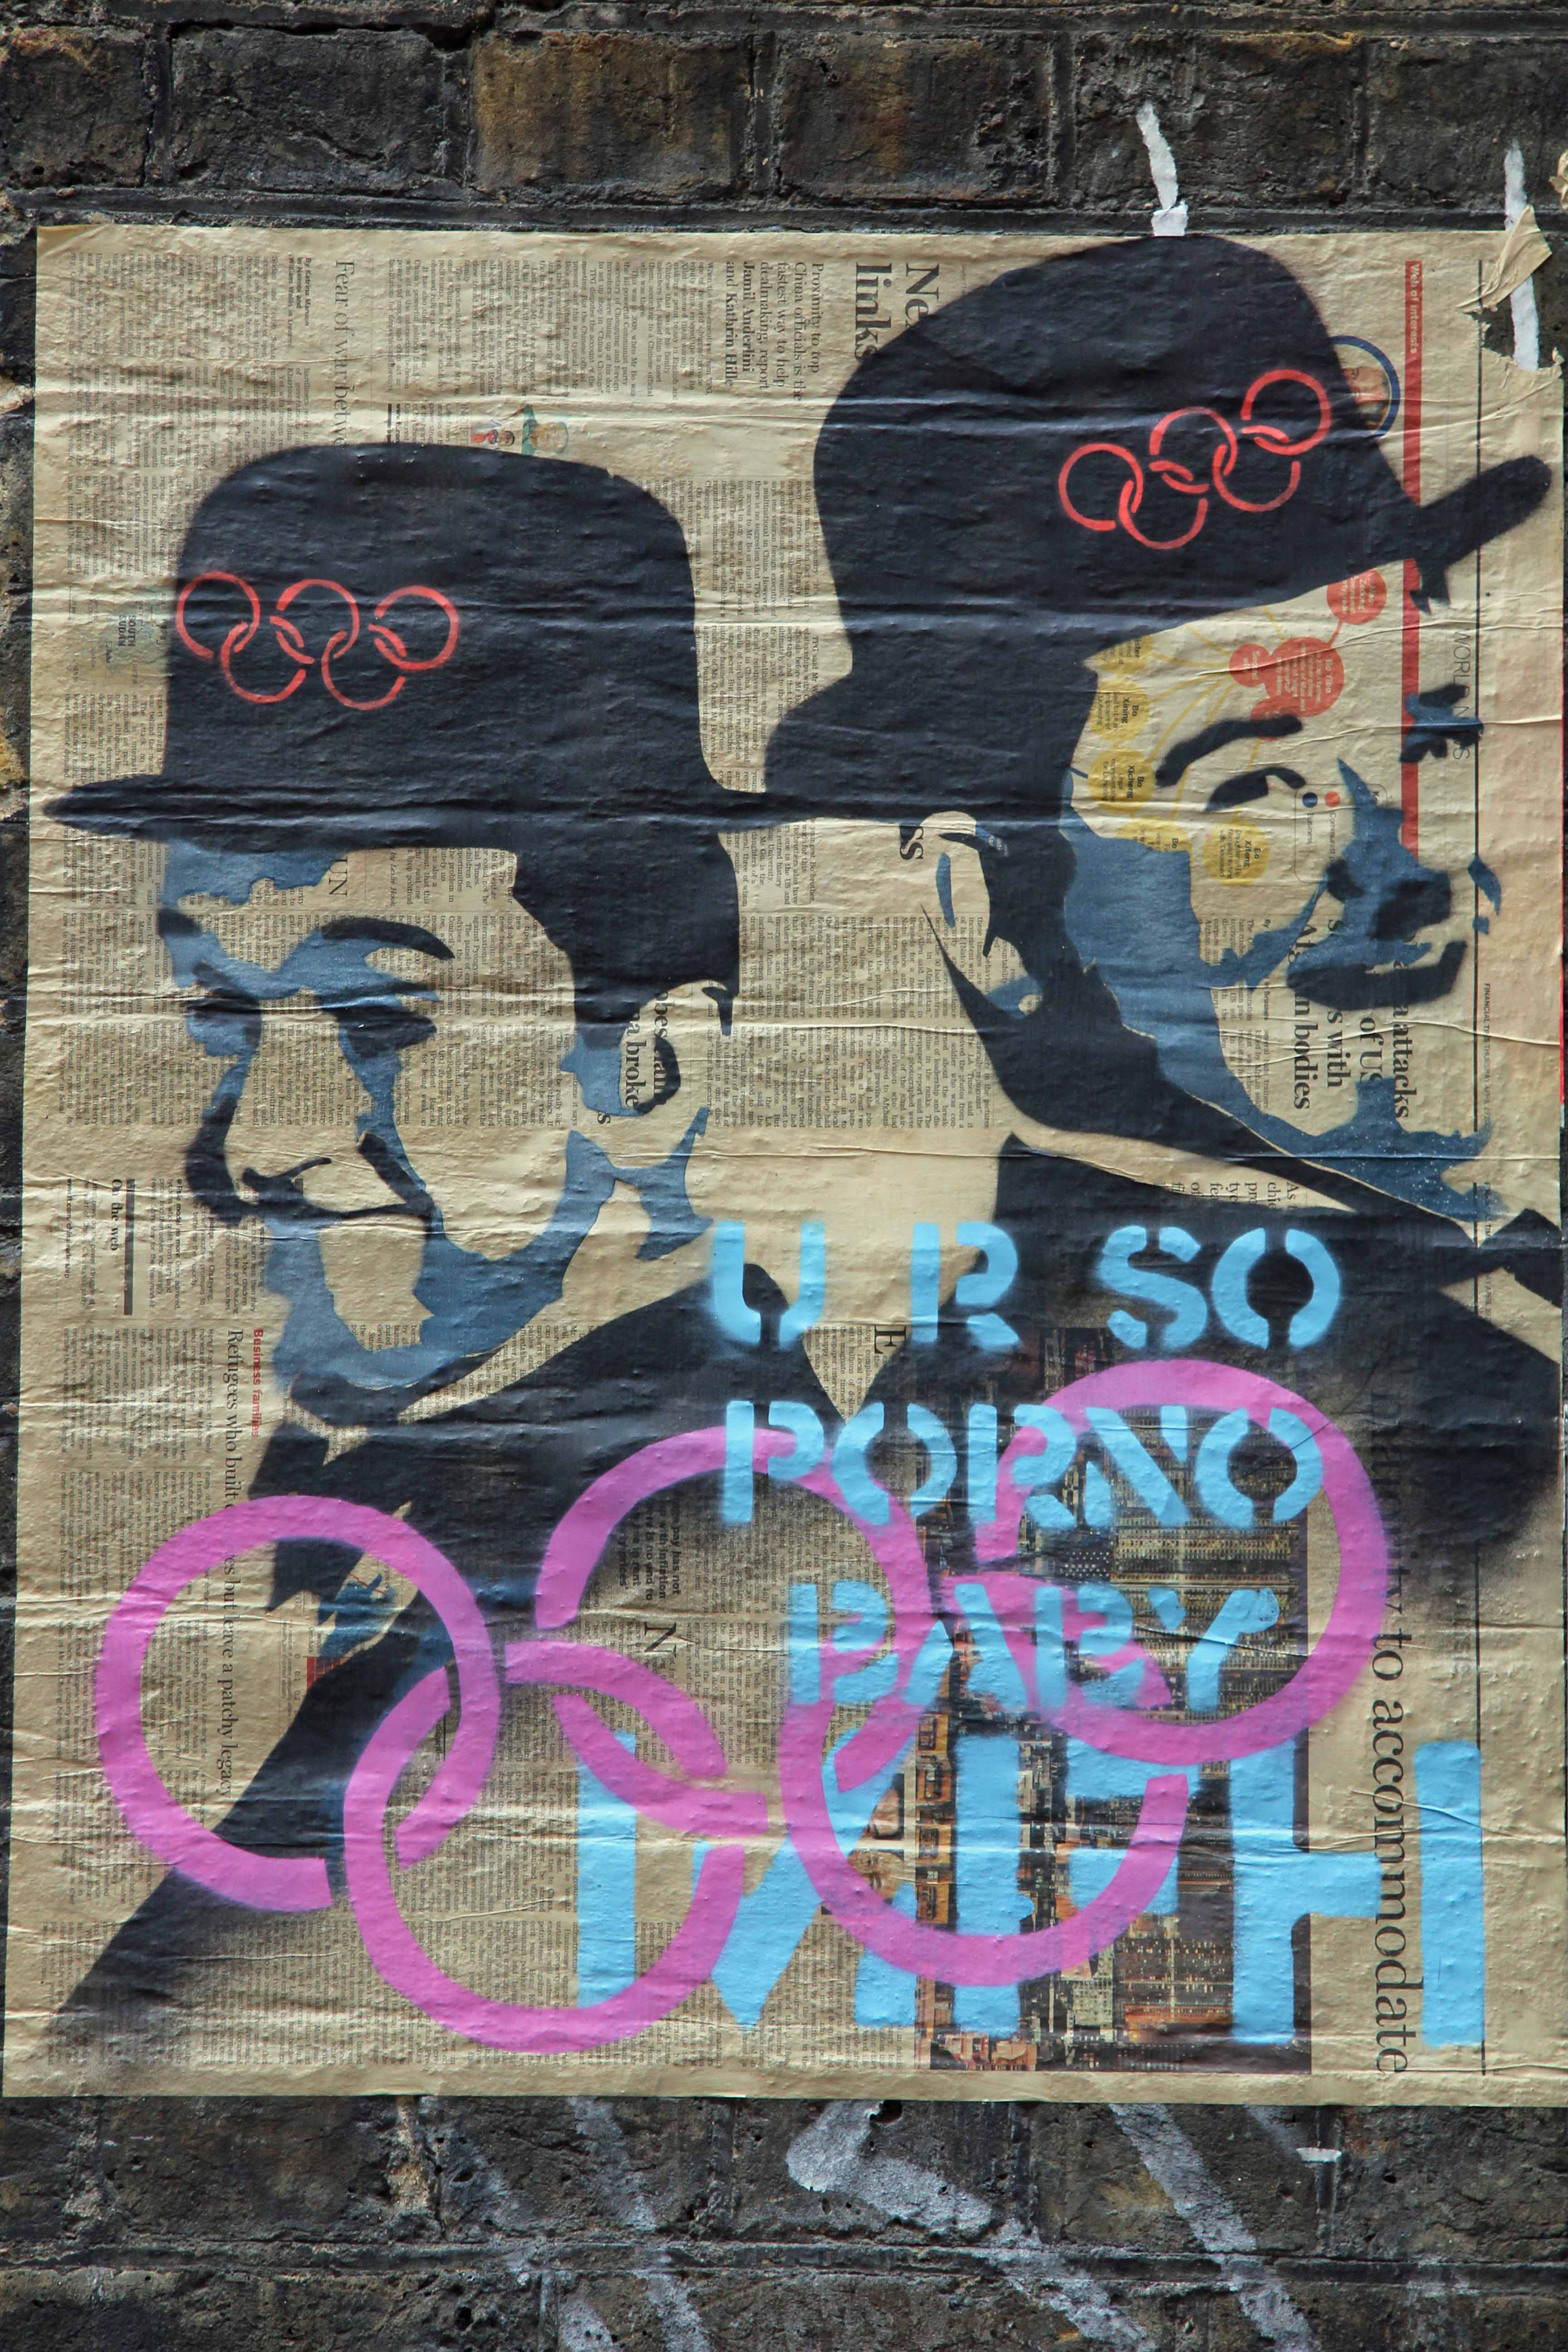 Dick und Doof (Laurel & Hardy) do the Olympics - Street Art by Mr. Fahrenheit in East London